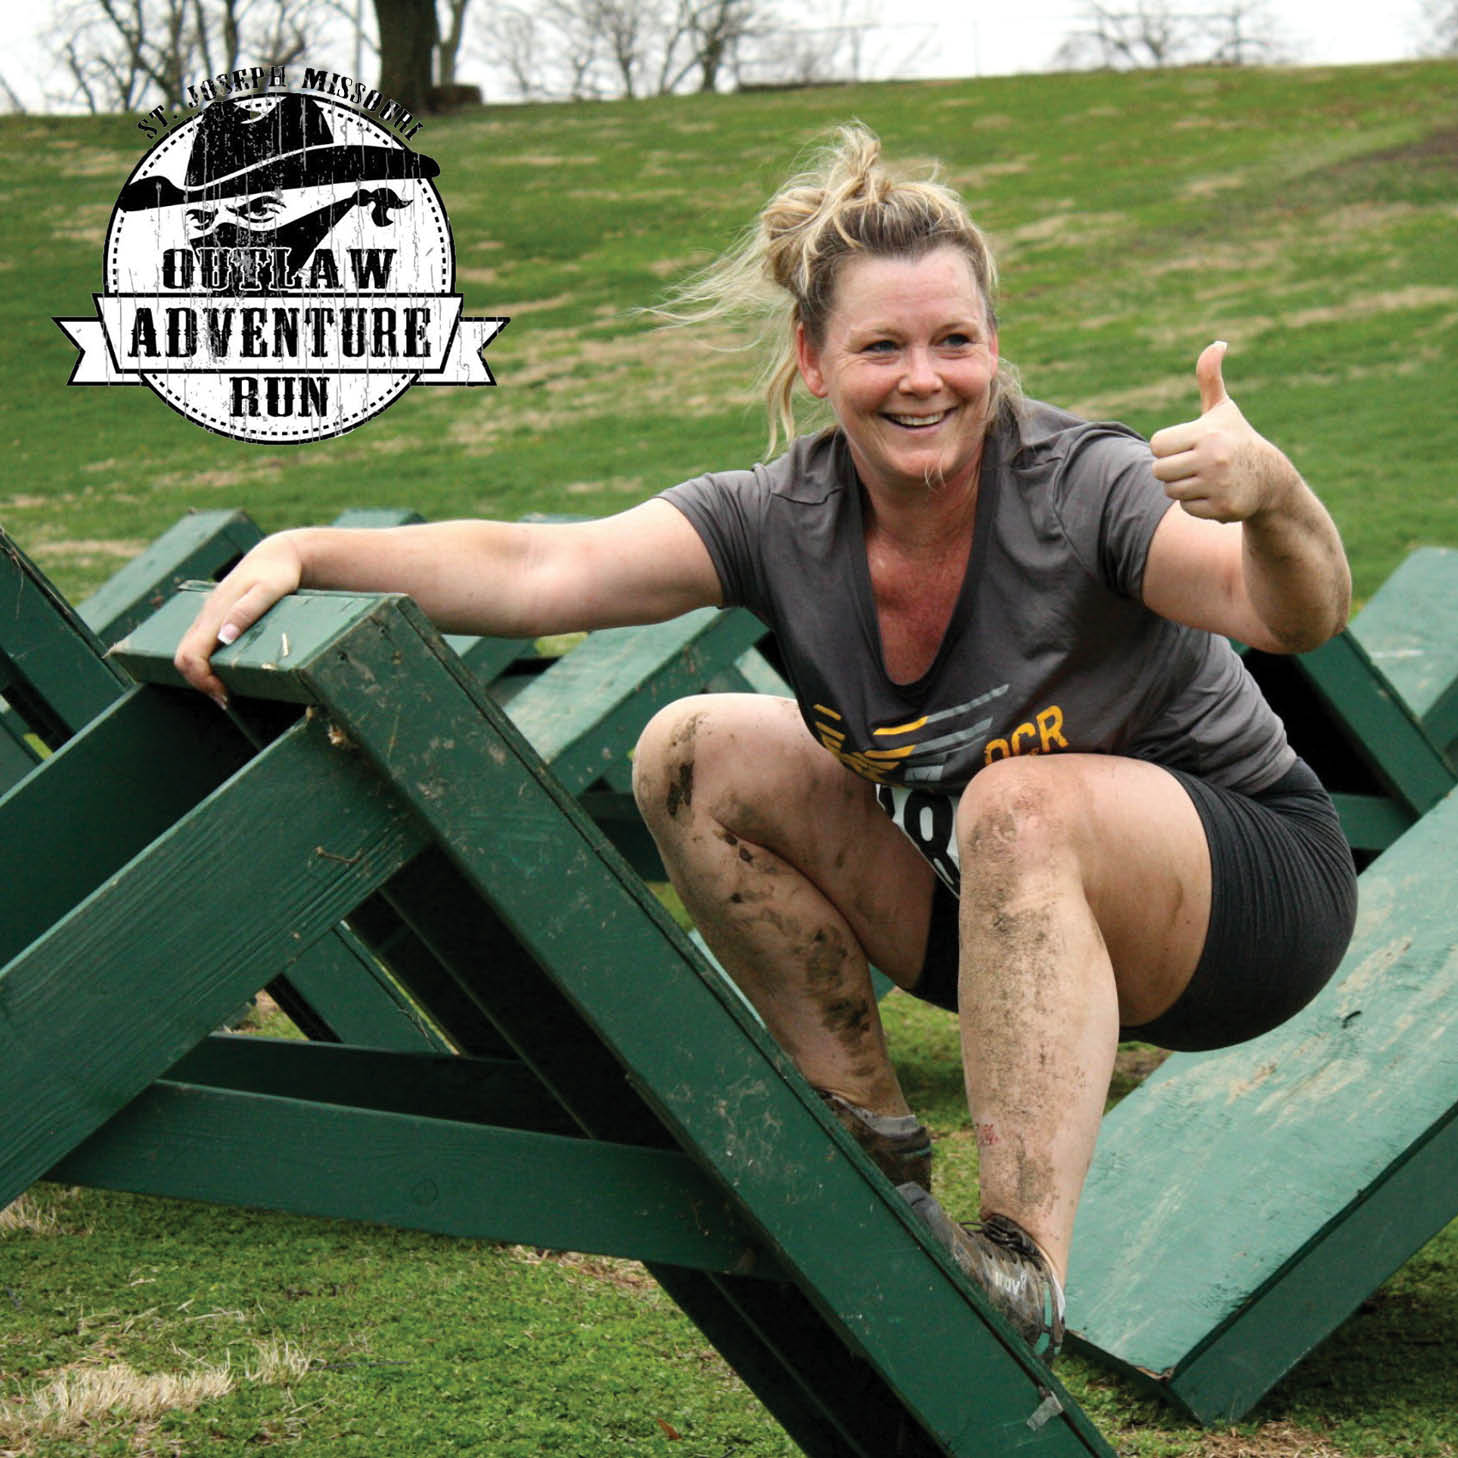 Outlaw Adventure Run